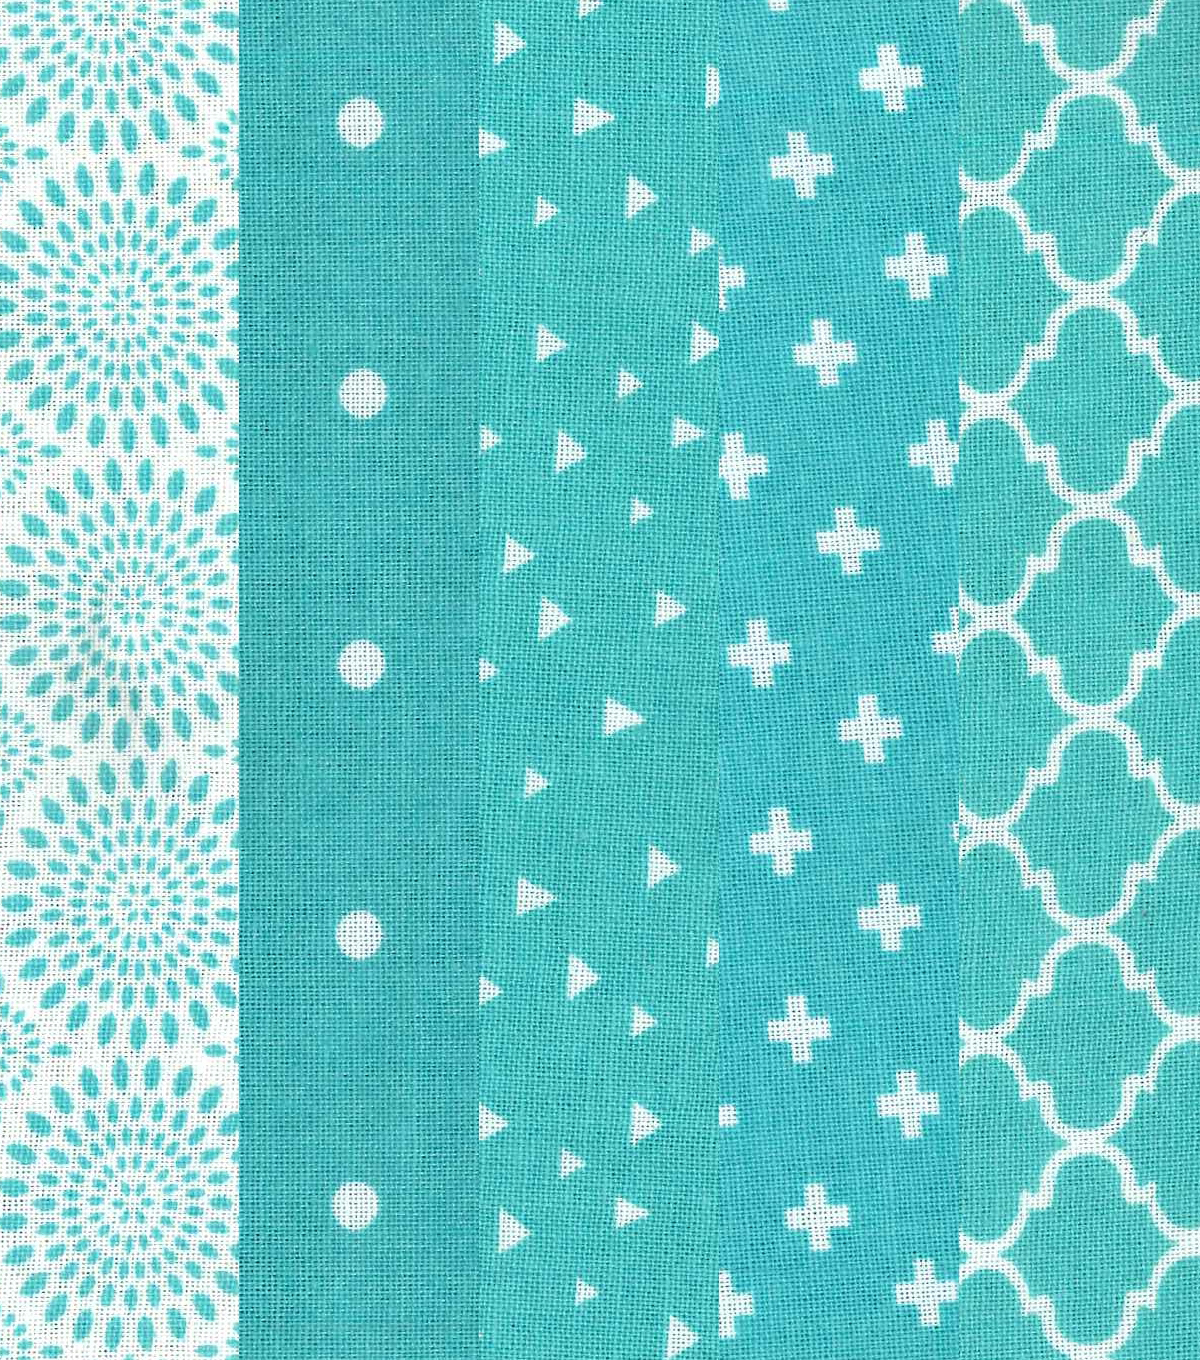 Jelly Roll Cotton Fabric 20 Strips-Assorted Turquoise/White Patterns